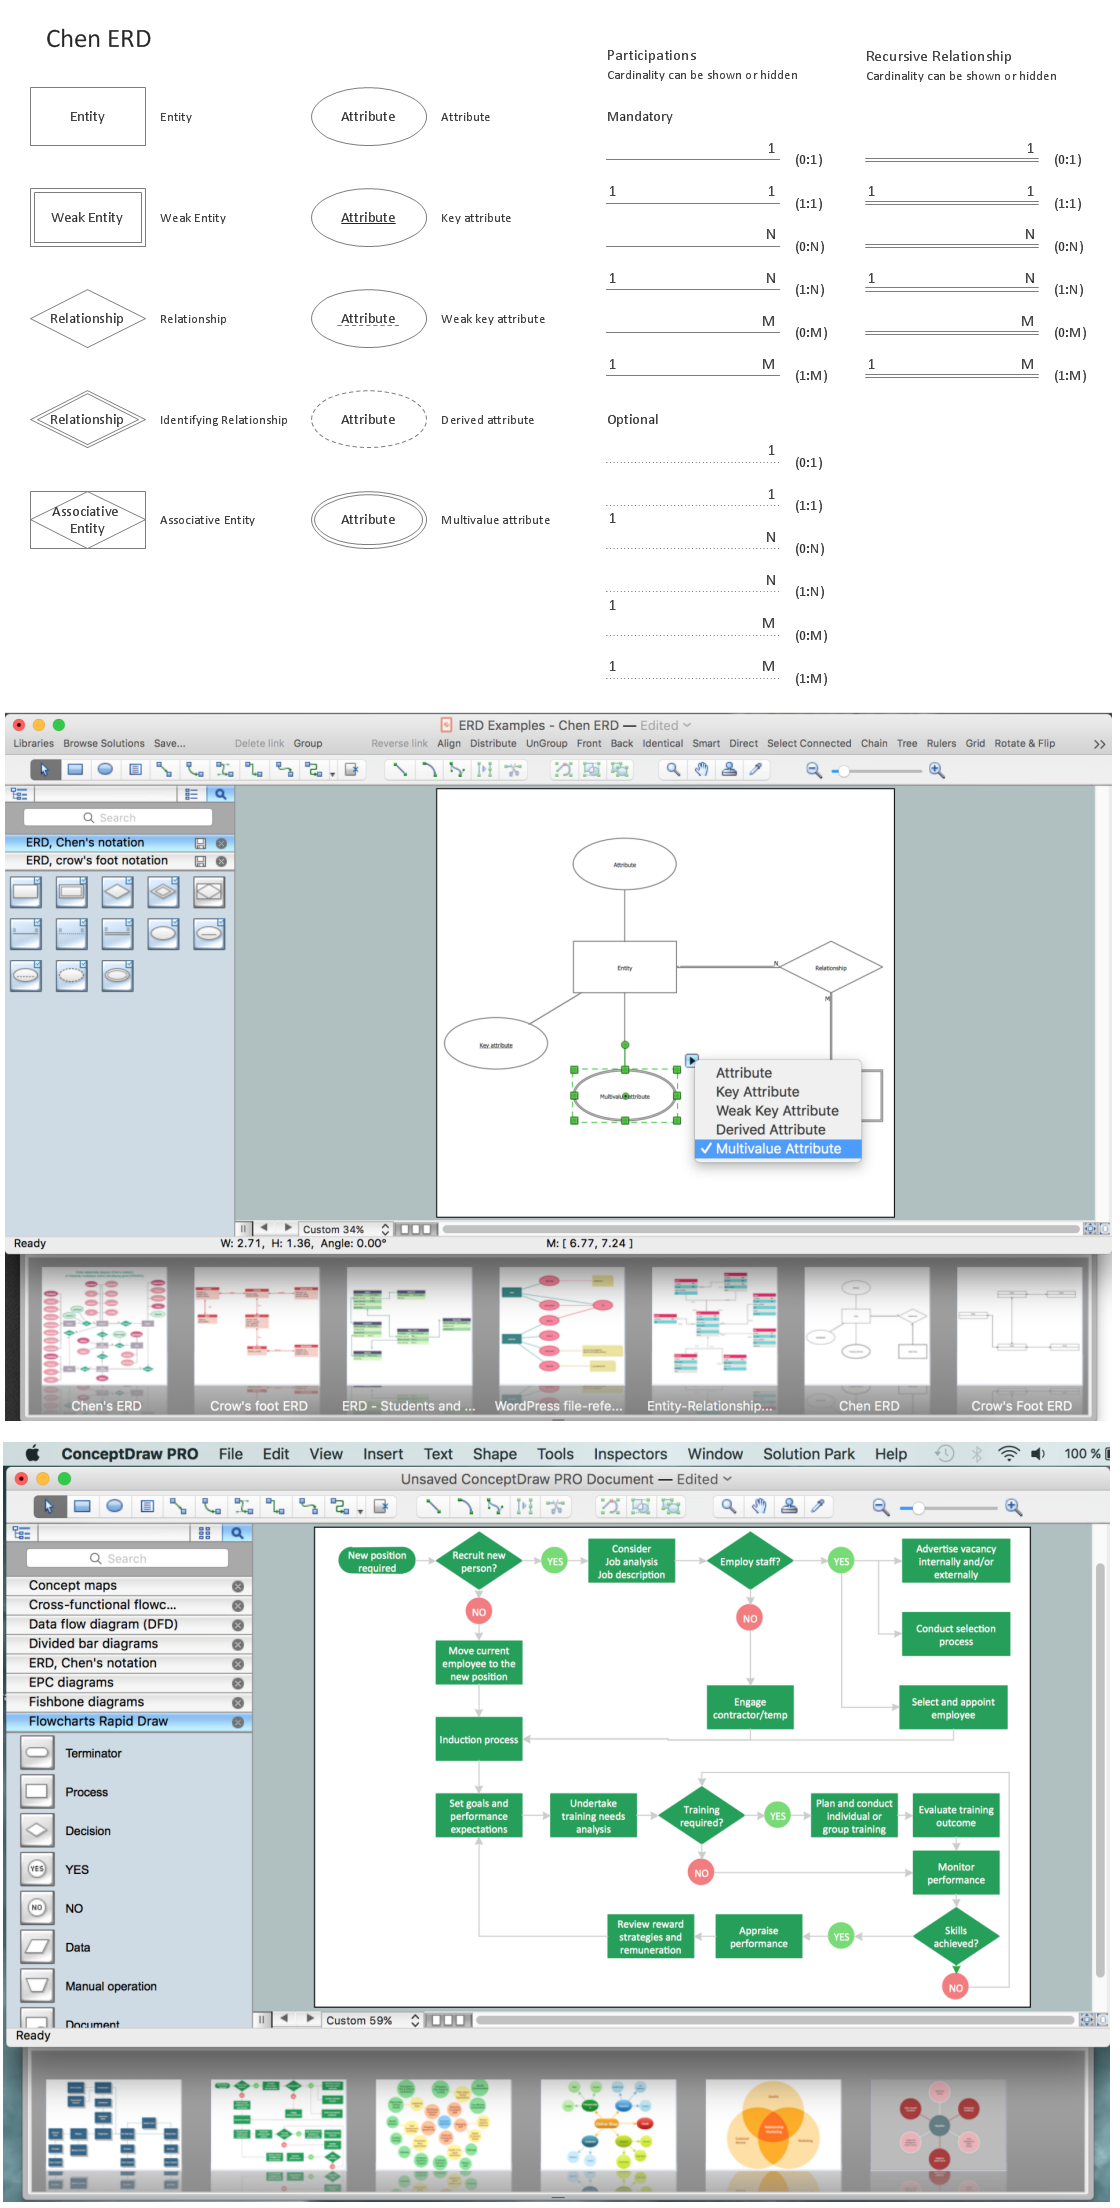 Entity Relationship Diagram Software, Design Elements - Chen (Windows, Macintosh)